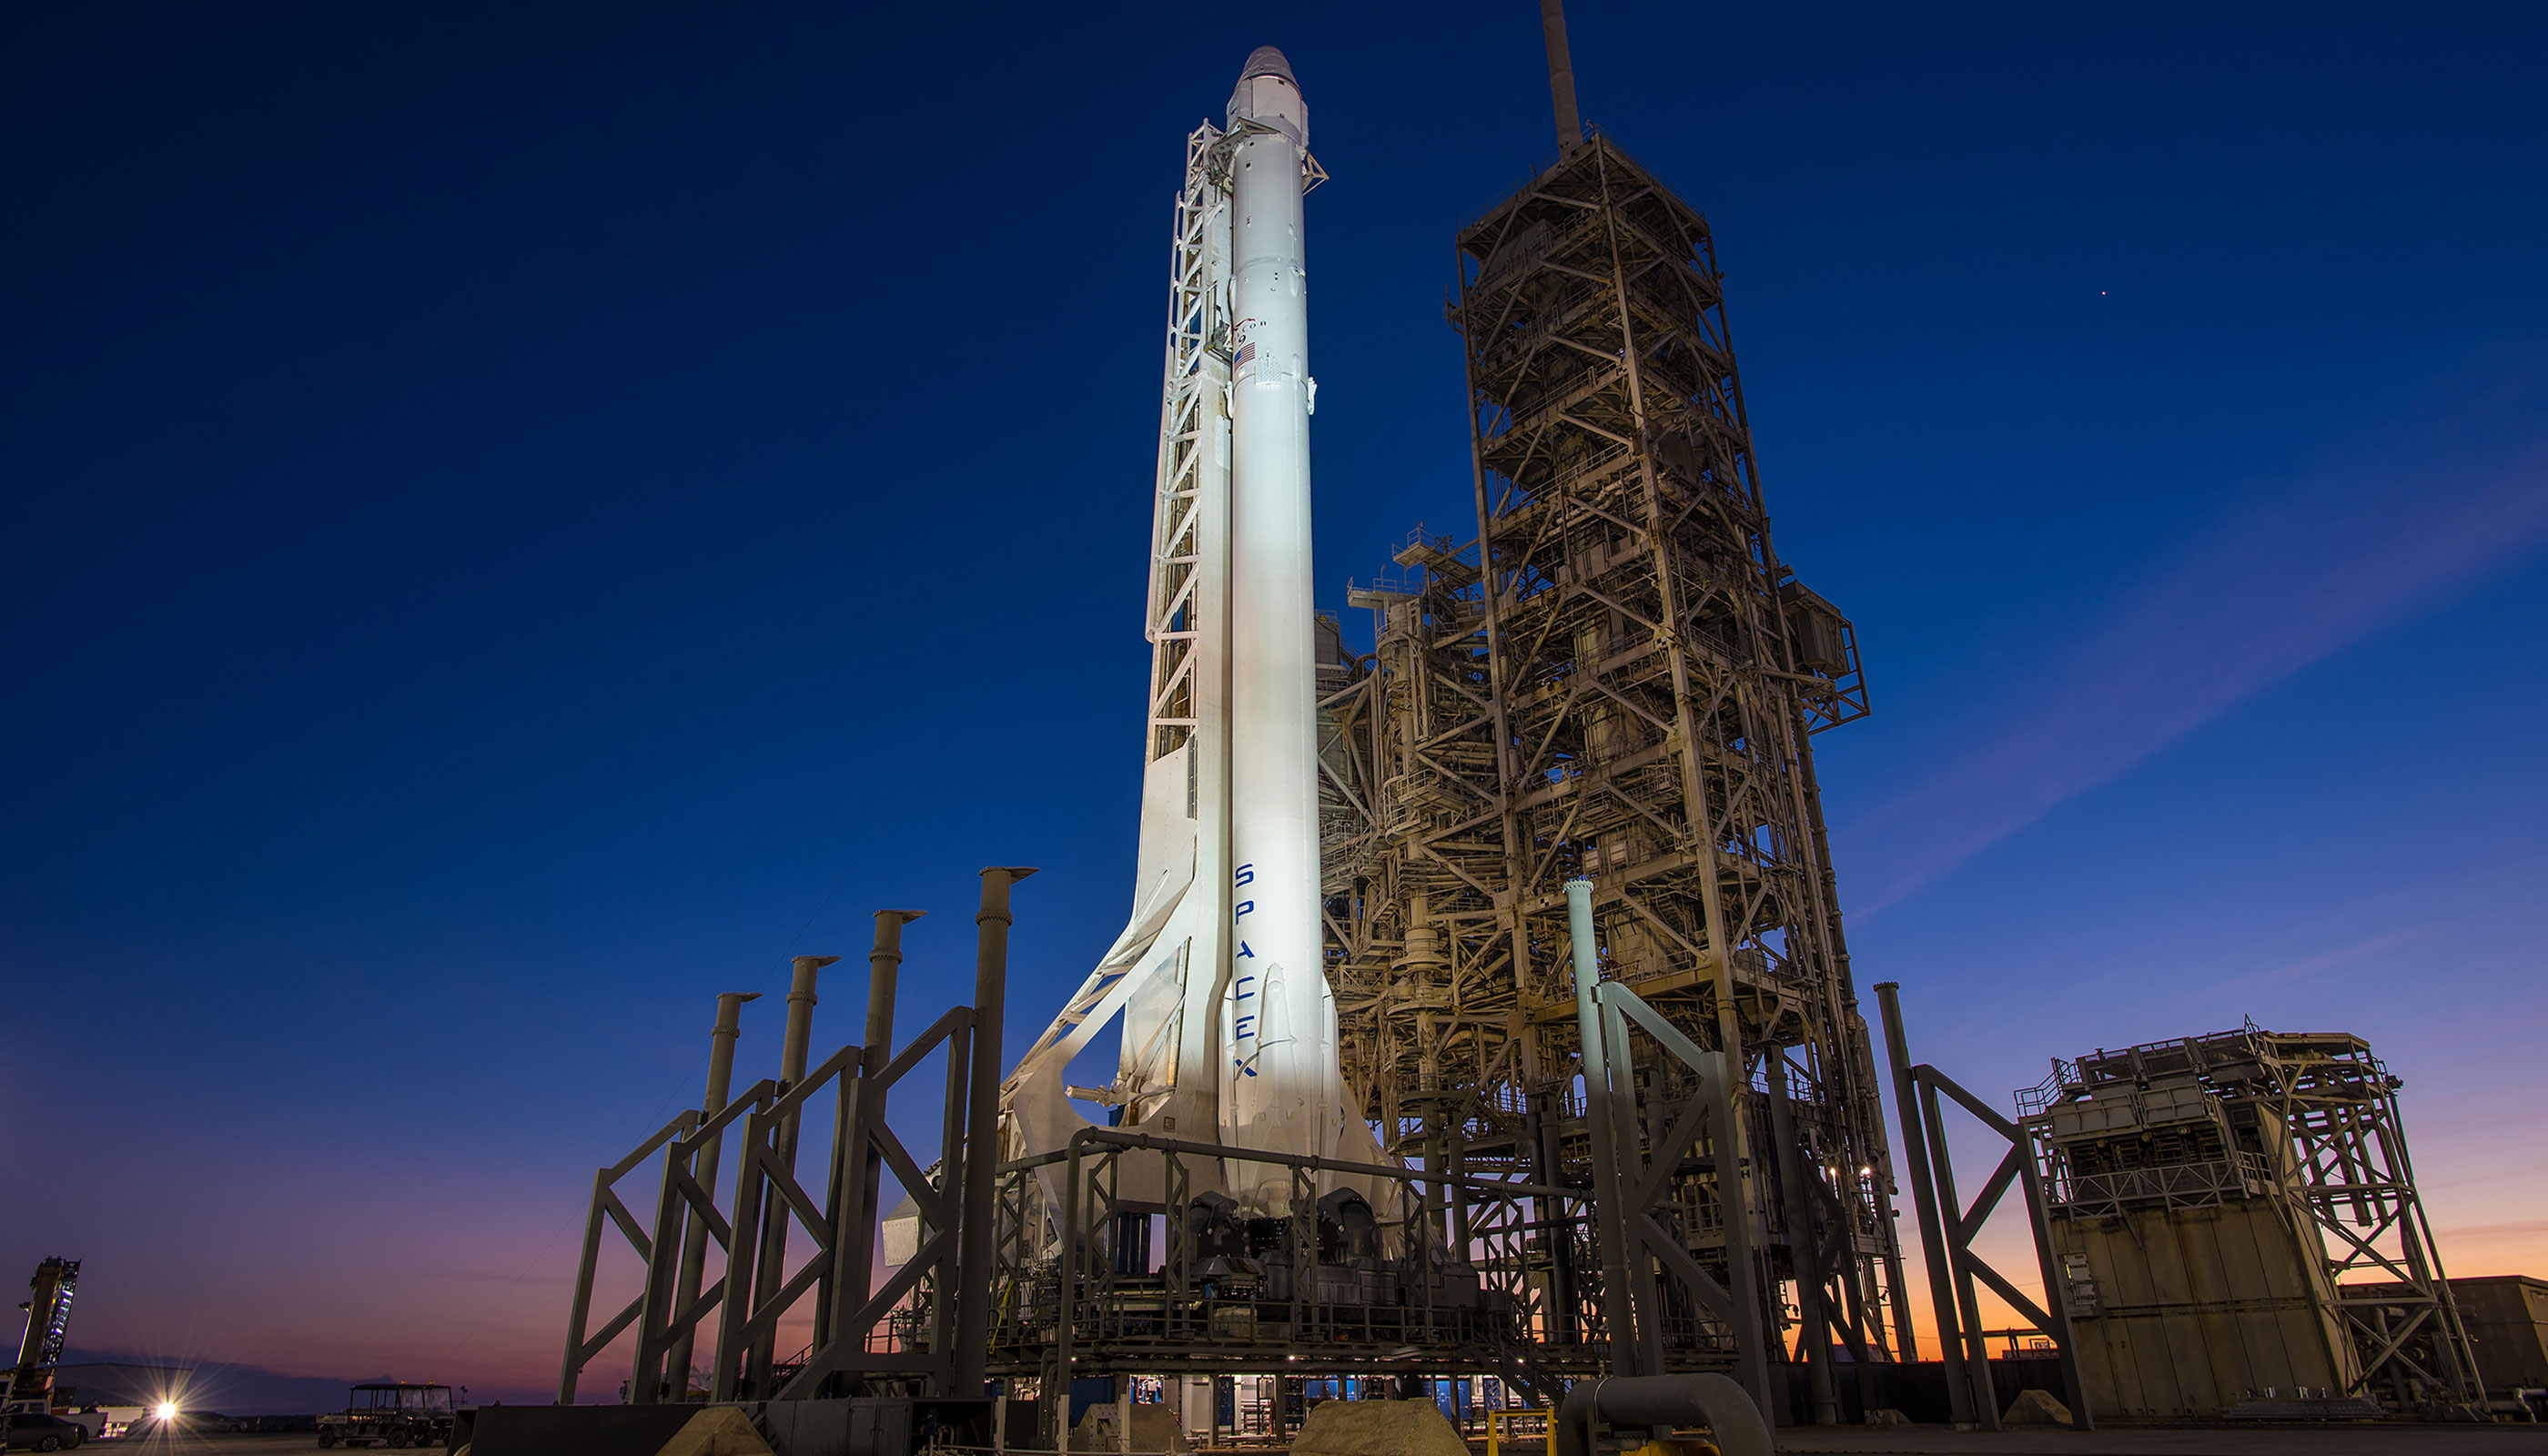 More than 20 Payloads Sponsored by the U.S. National Laboratory Slated to Launch on SpaceX CRS-12 to the International Space Station